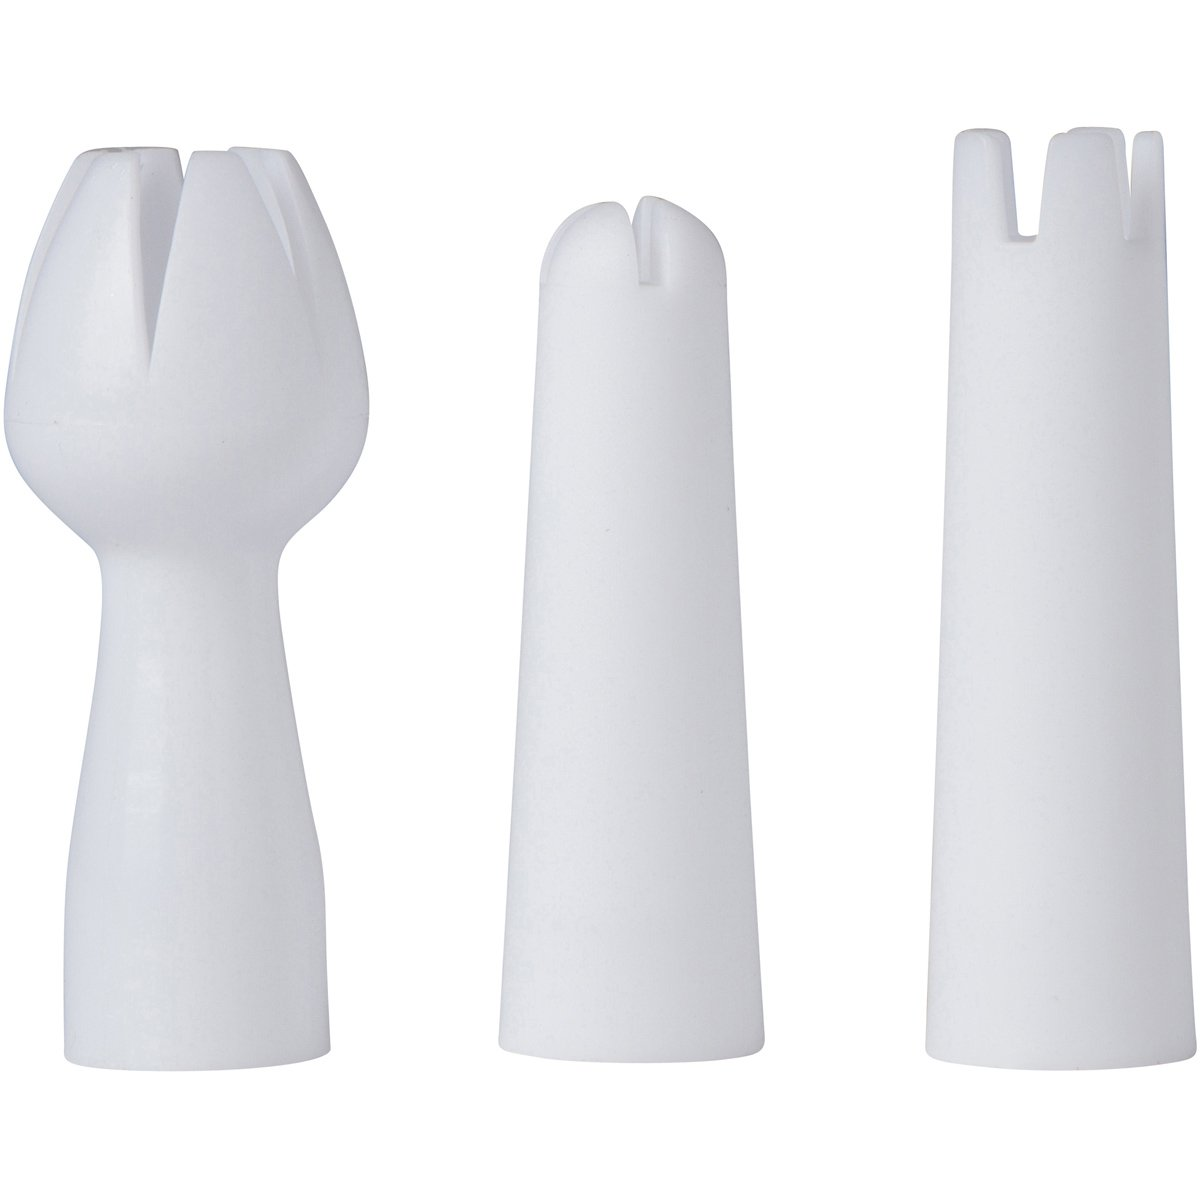 Whipped Cream Dispenser Replacement Decorating Tips - White Plastic Zcutt Home Goods